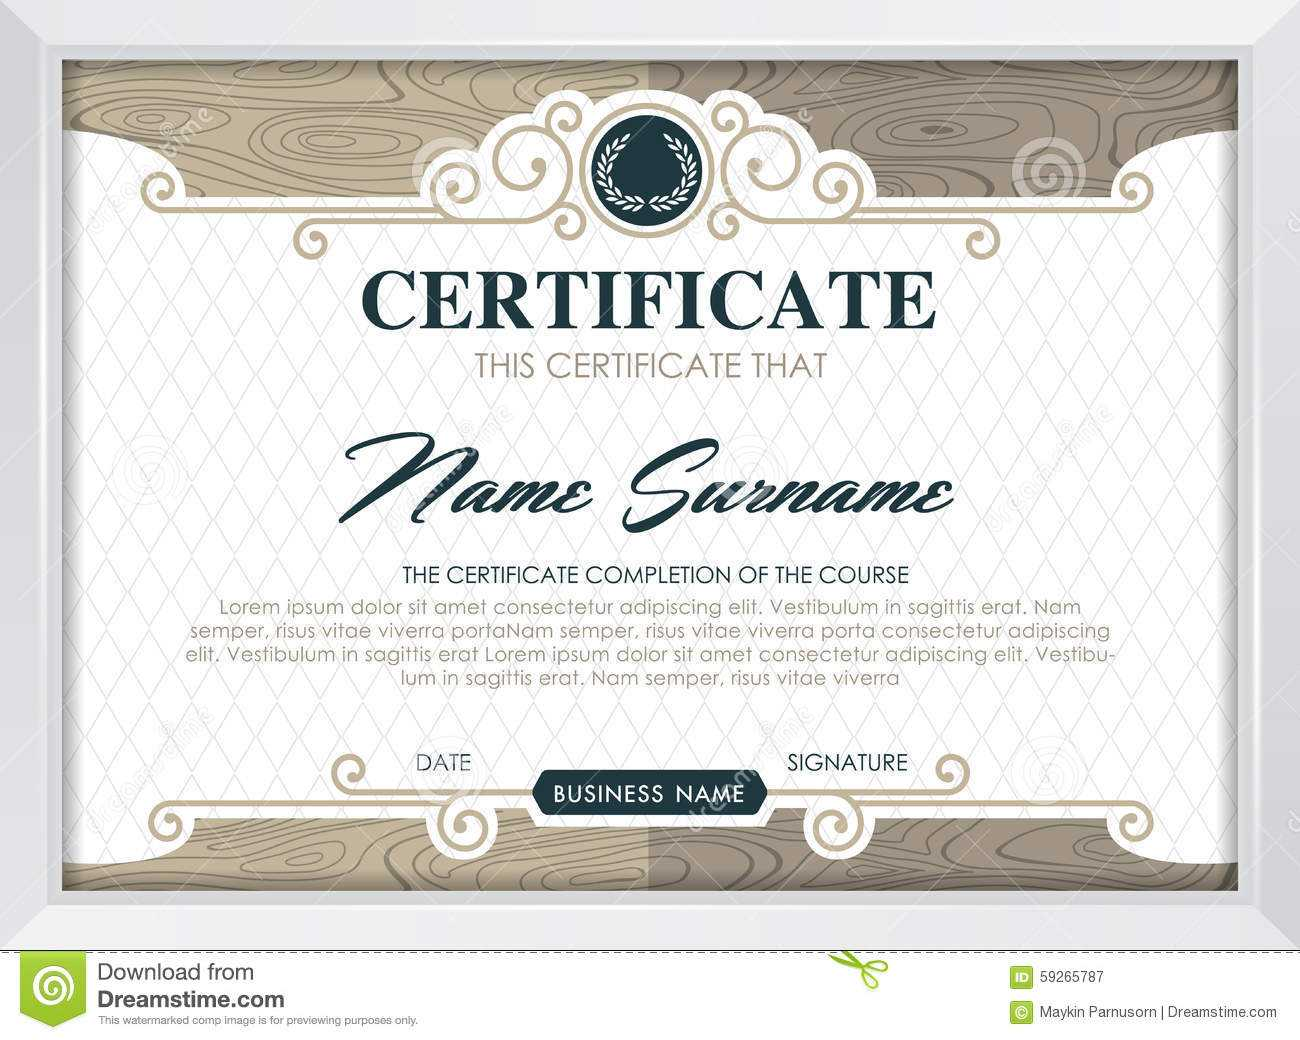 Certificate Stock Vector. Illustration Of Antique, Award Within Qualification Certificate Template